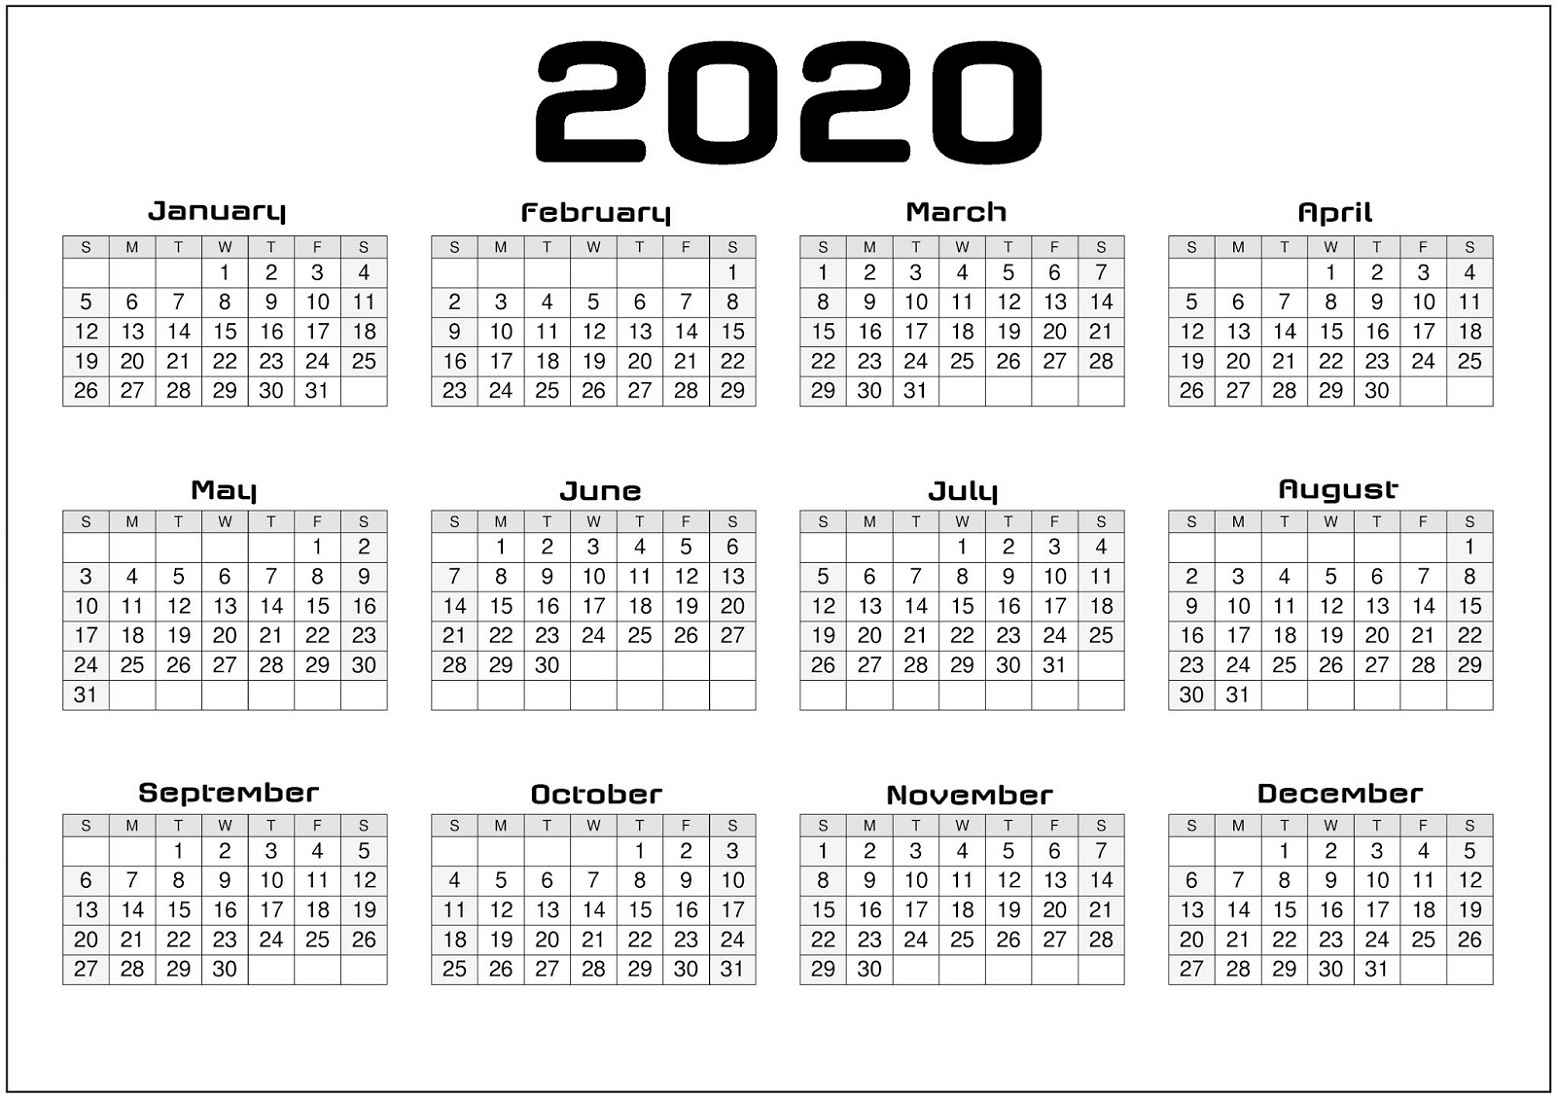 Yearly Calendar 2020 Printable Free For Agenda | Calendar